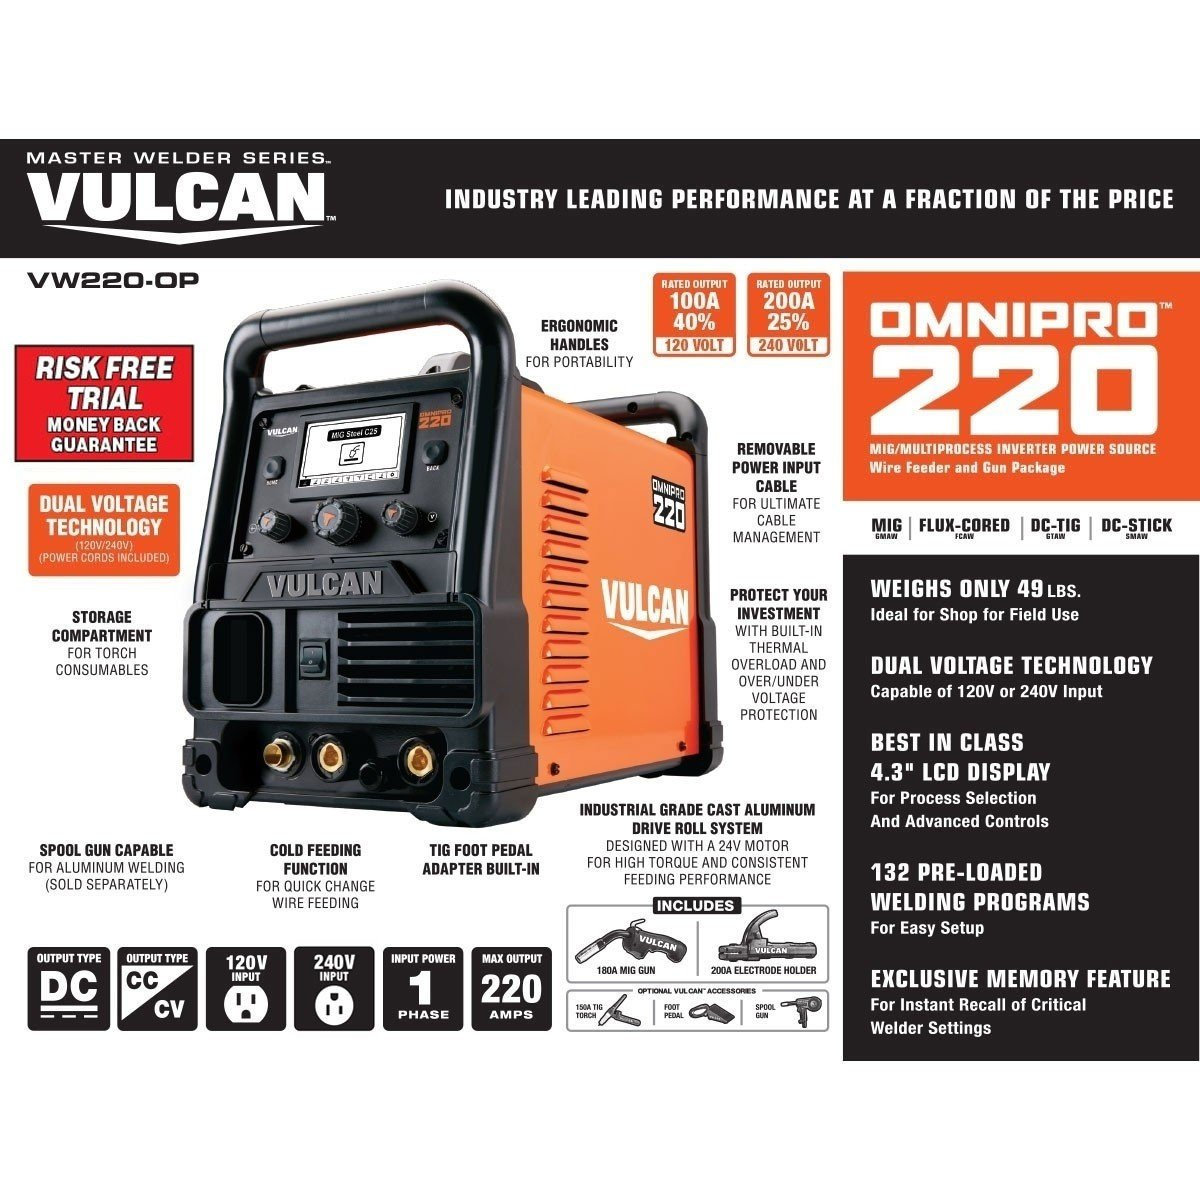 Vulcan OmniPro 220 Multiprocess Welder with 120/240 Volt Input by Vulcan (Image #3)